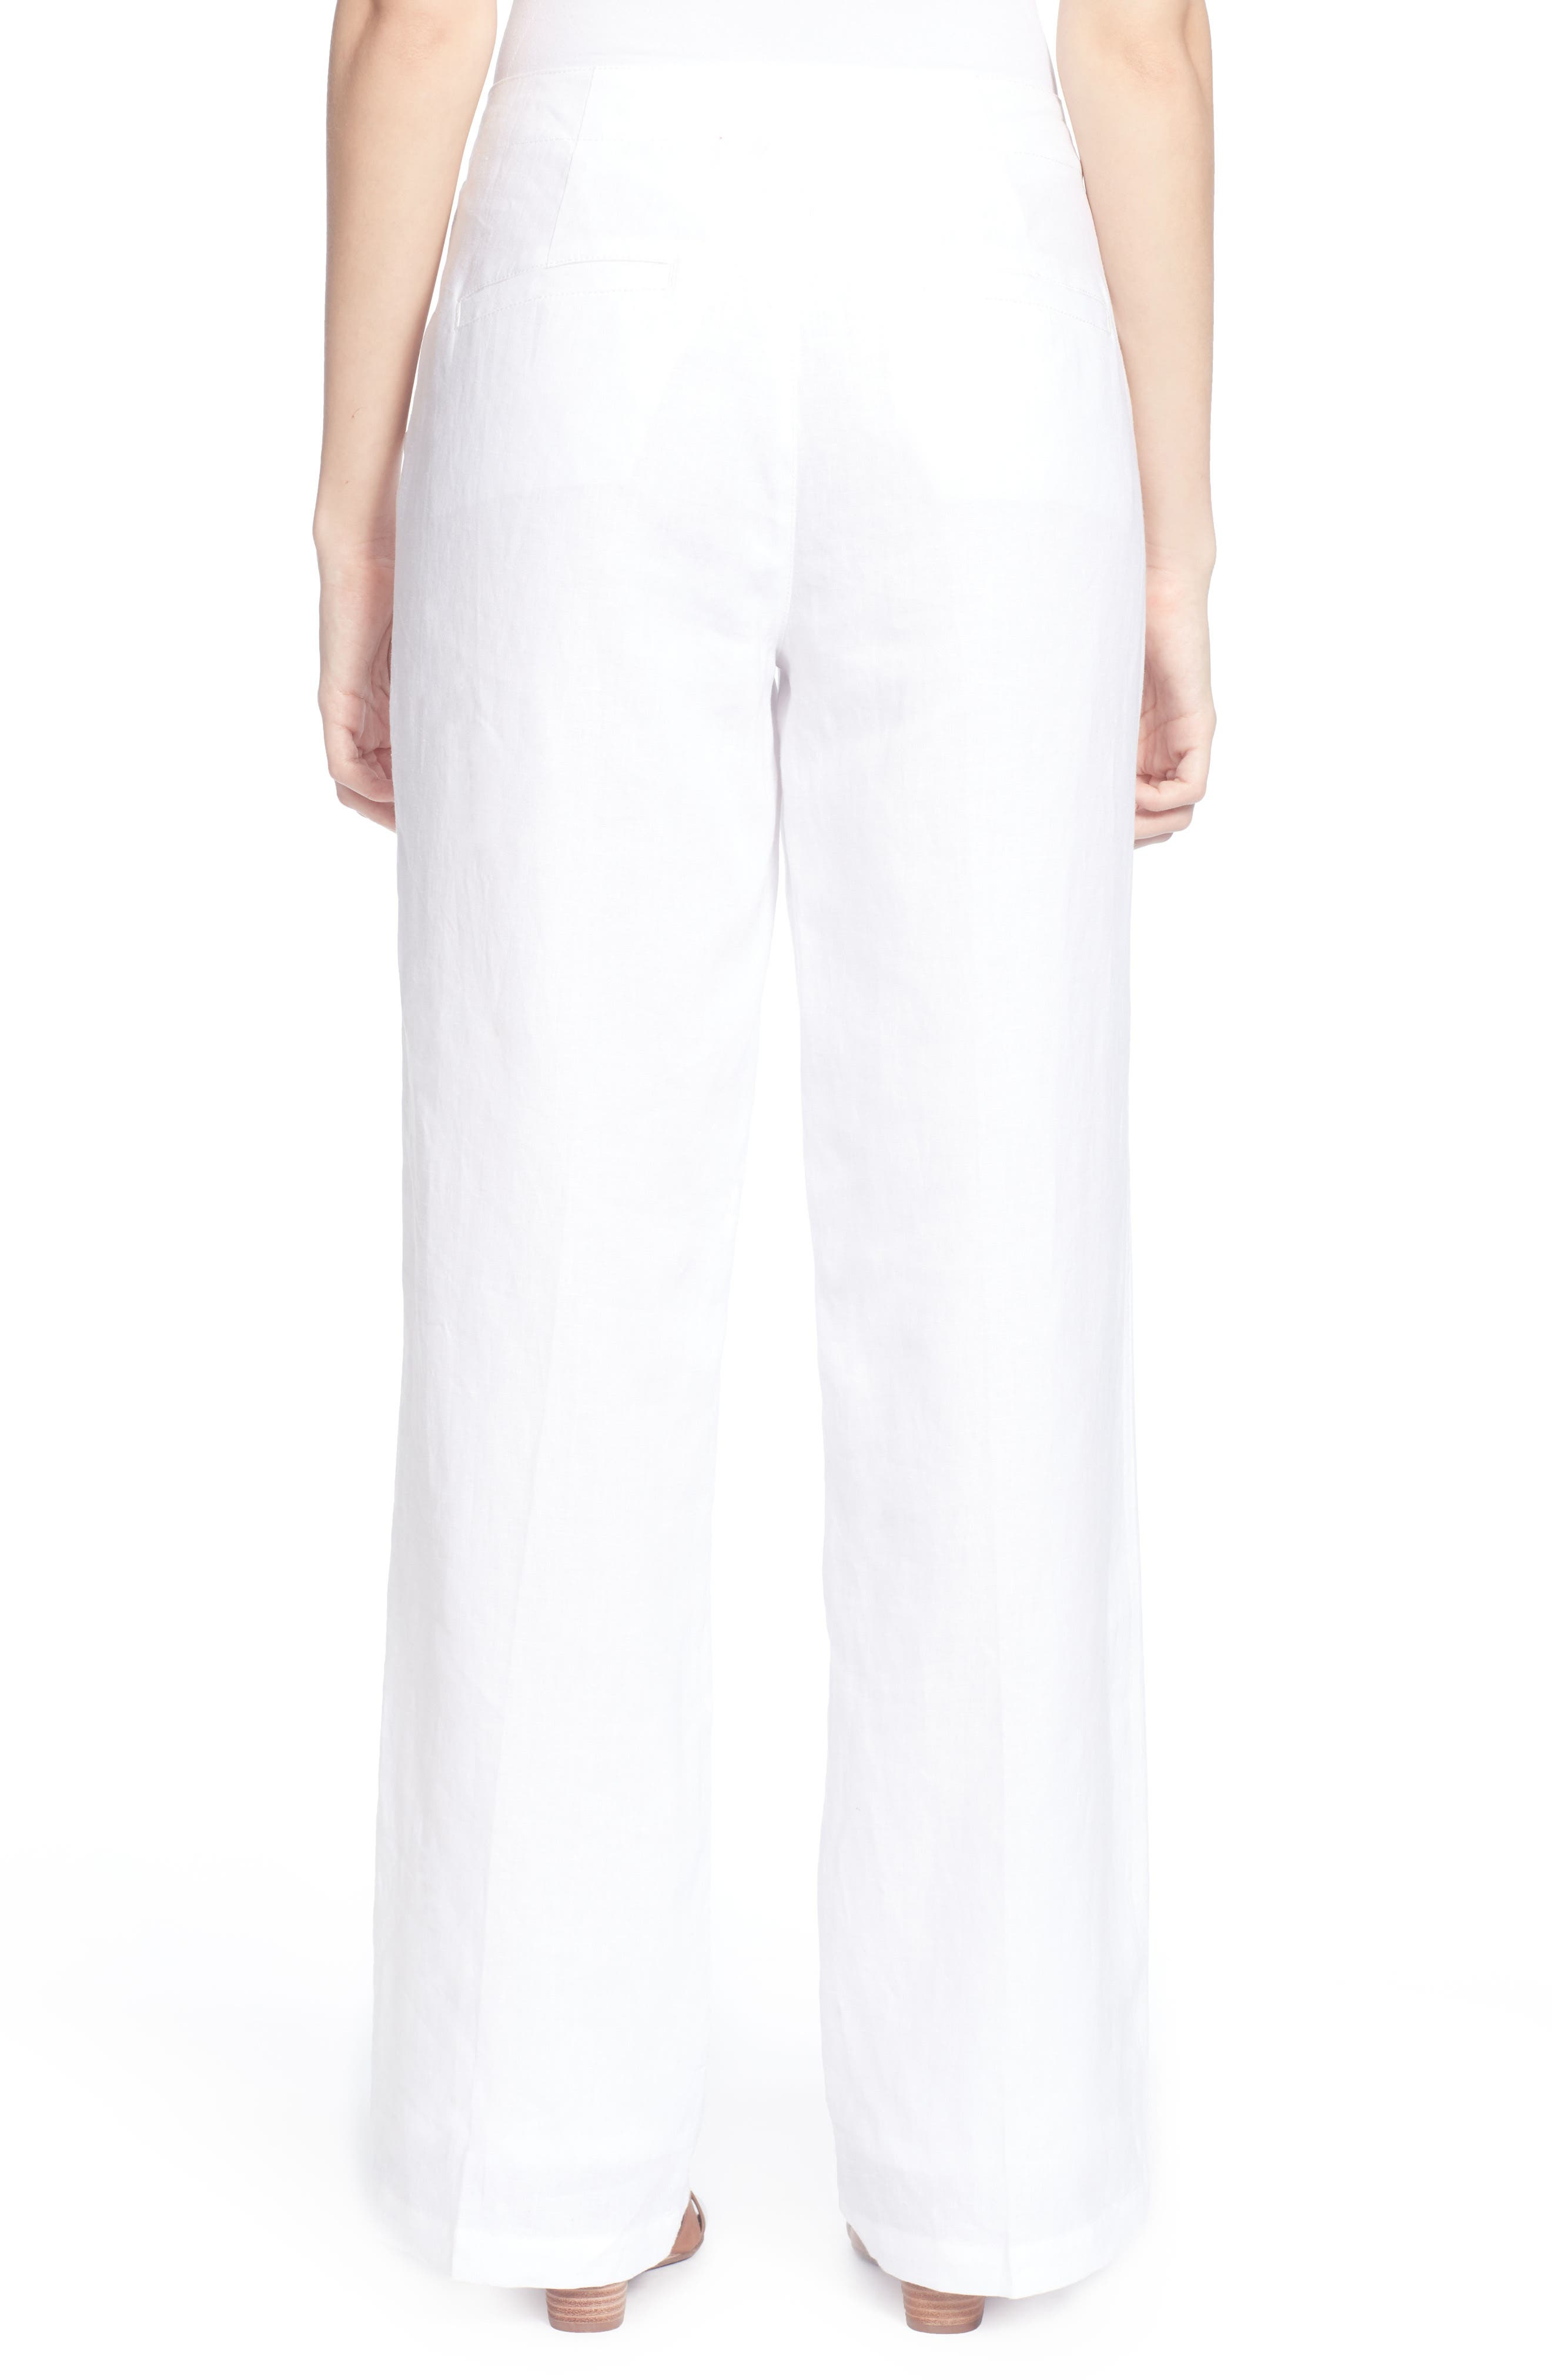 Fritz Linen Sailor Pants,                             Alternate thumbnail 2, color,                             Bright White